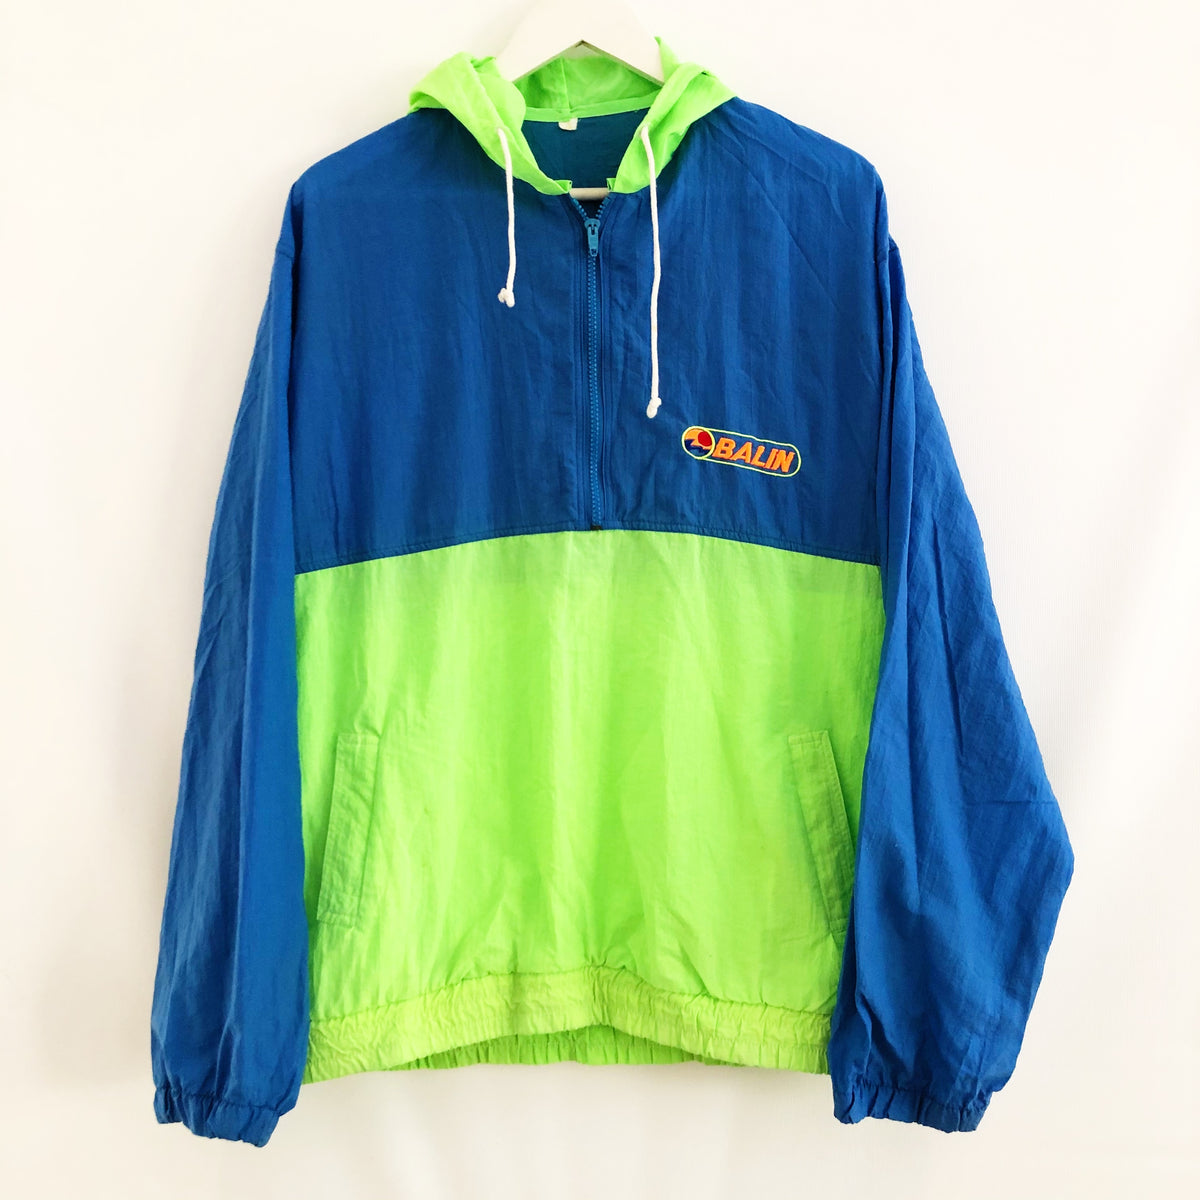 Balin Surfwear 1/2 Zip Windbreaker Vintage 90's Neon Mens Medium